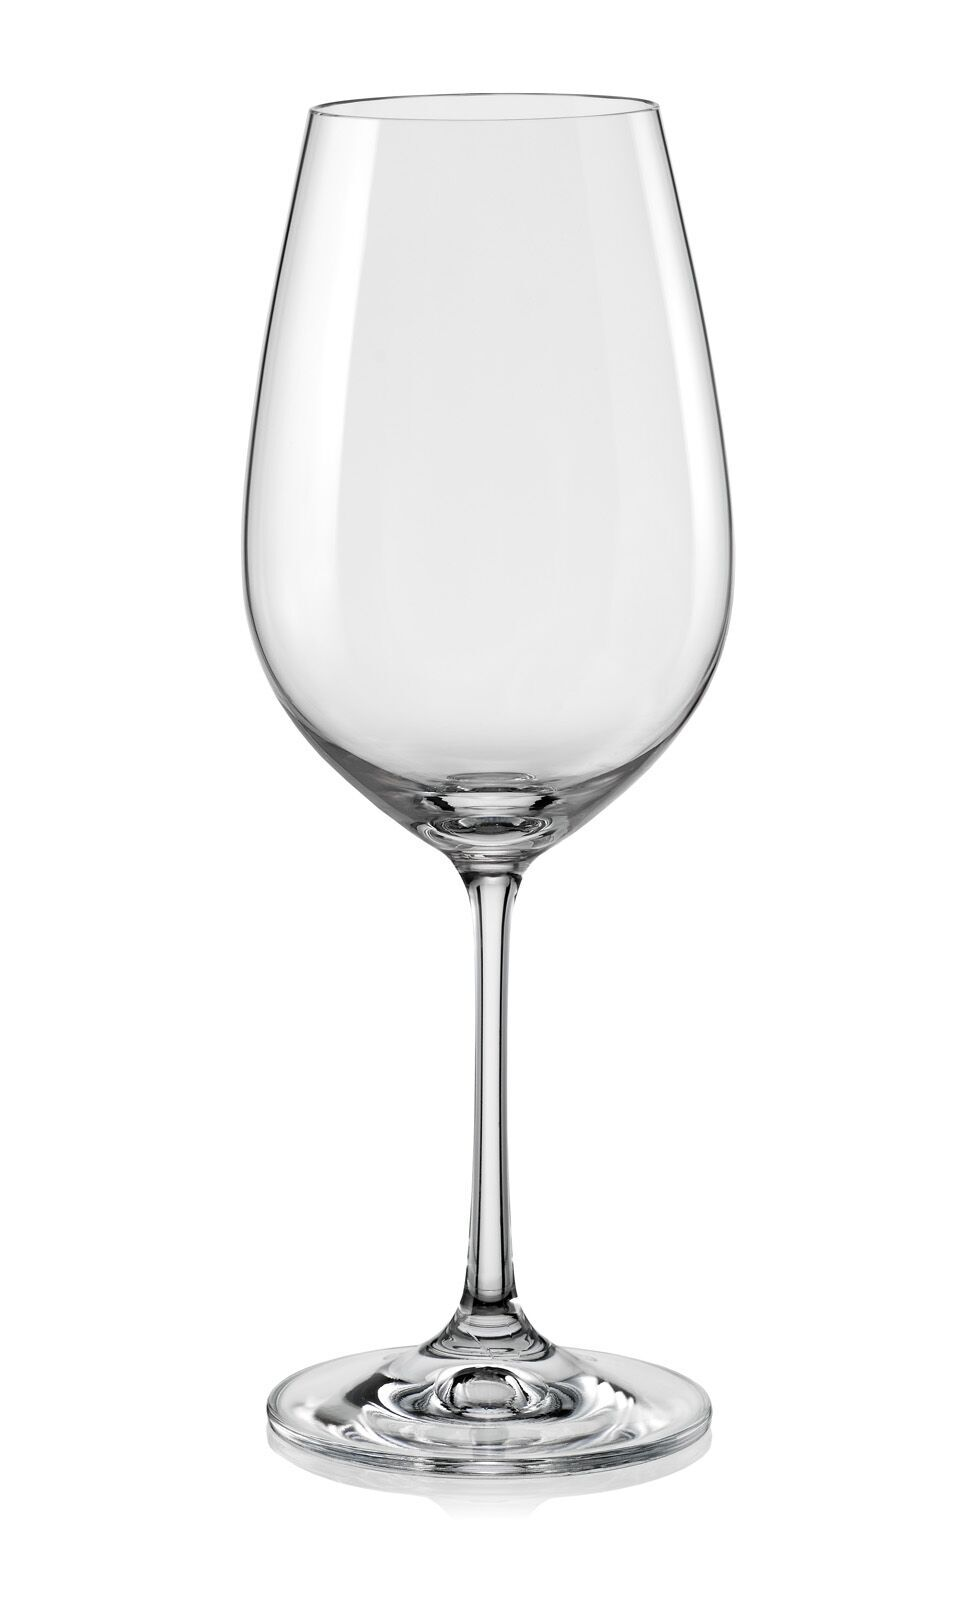 Bohemia Crystal Viola wine Glass 450ml set of 6 pcs Bar Glassware in Transparent Colour by Bohemia